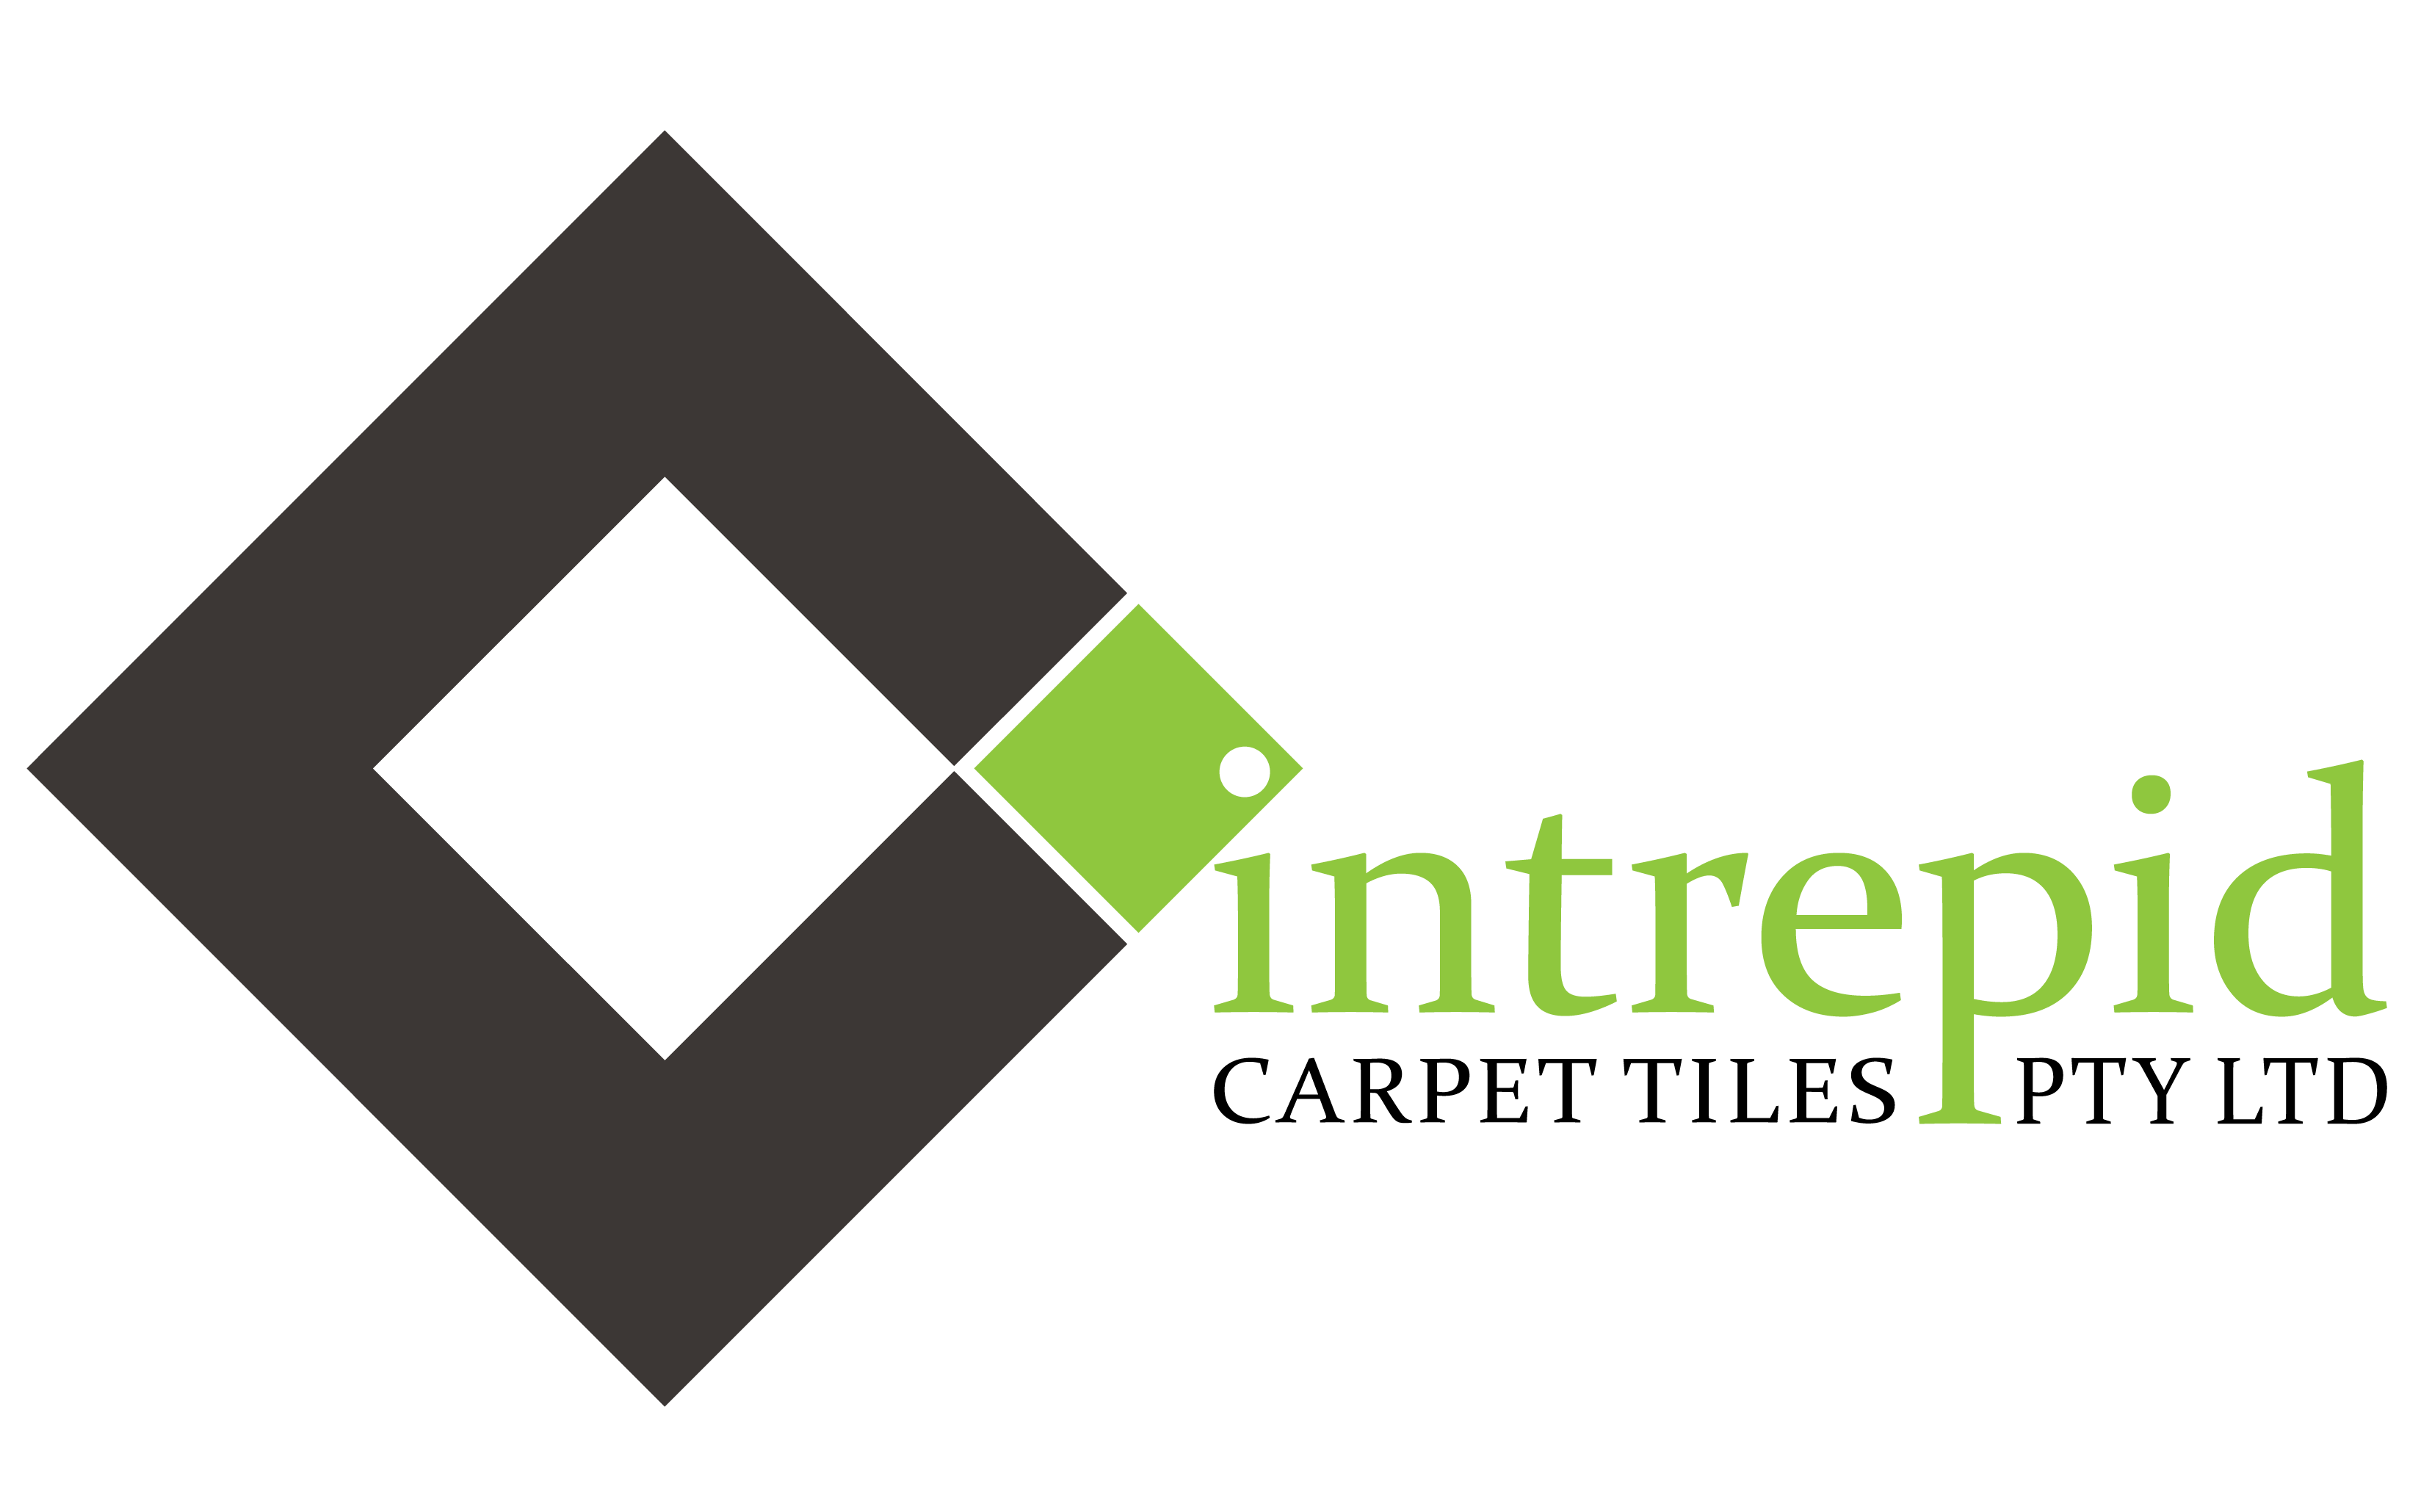 IntrepidLogo